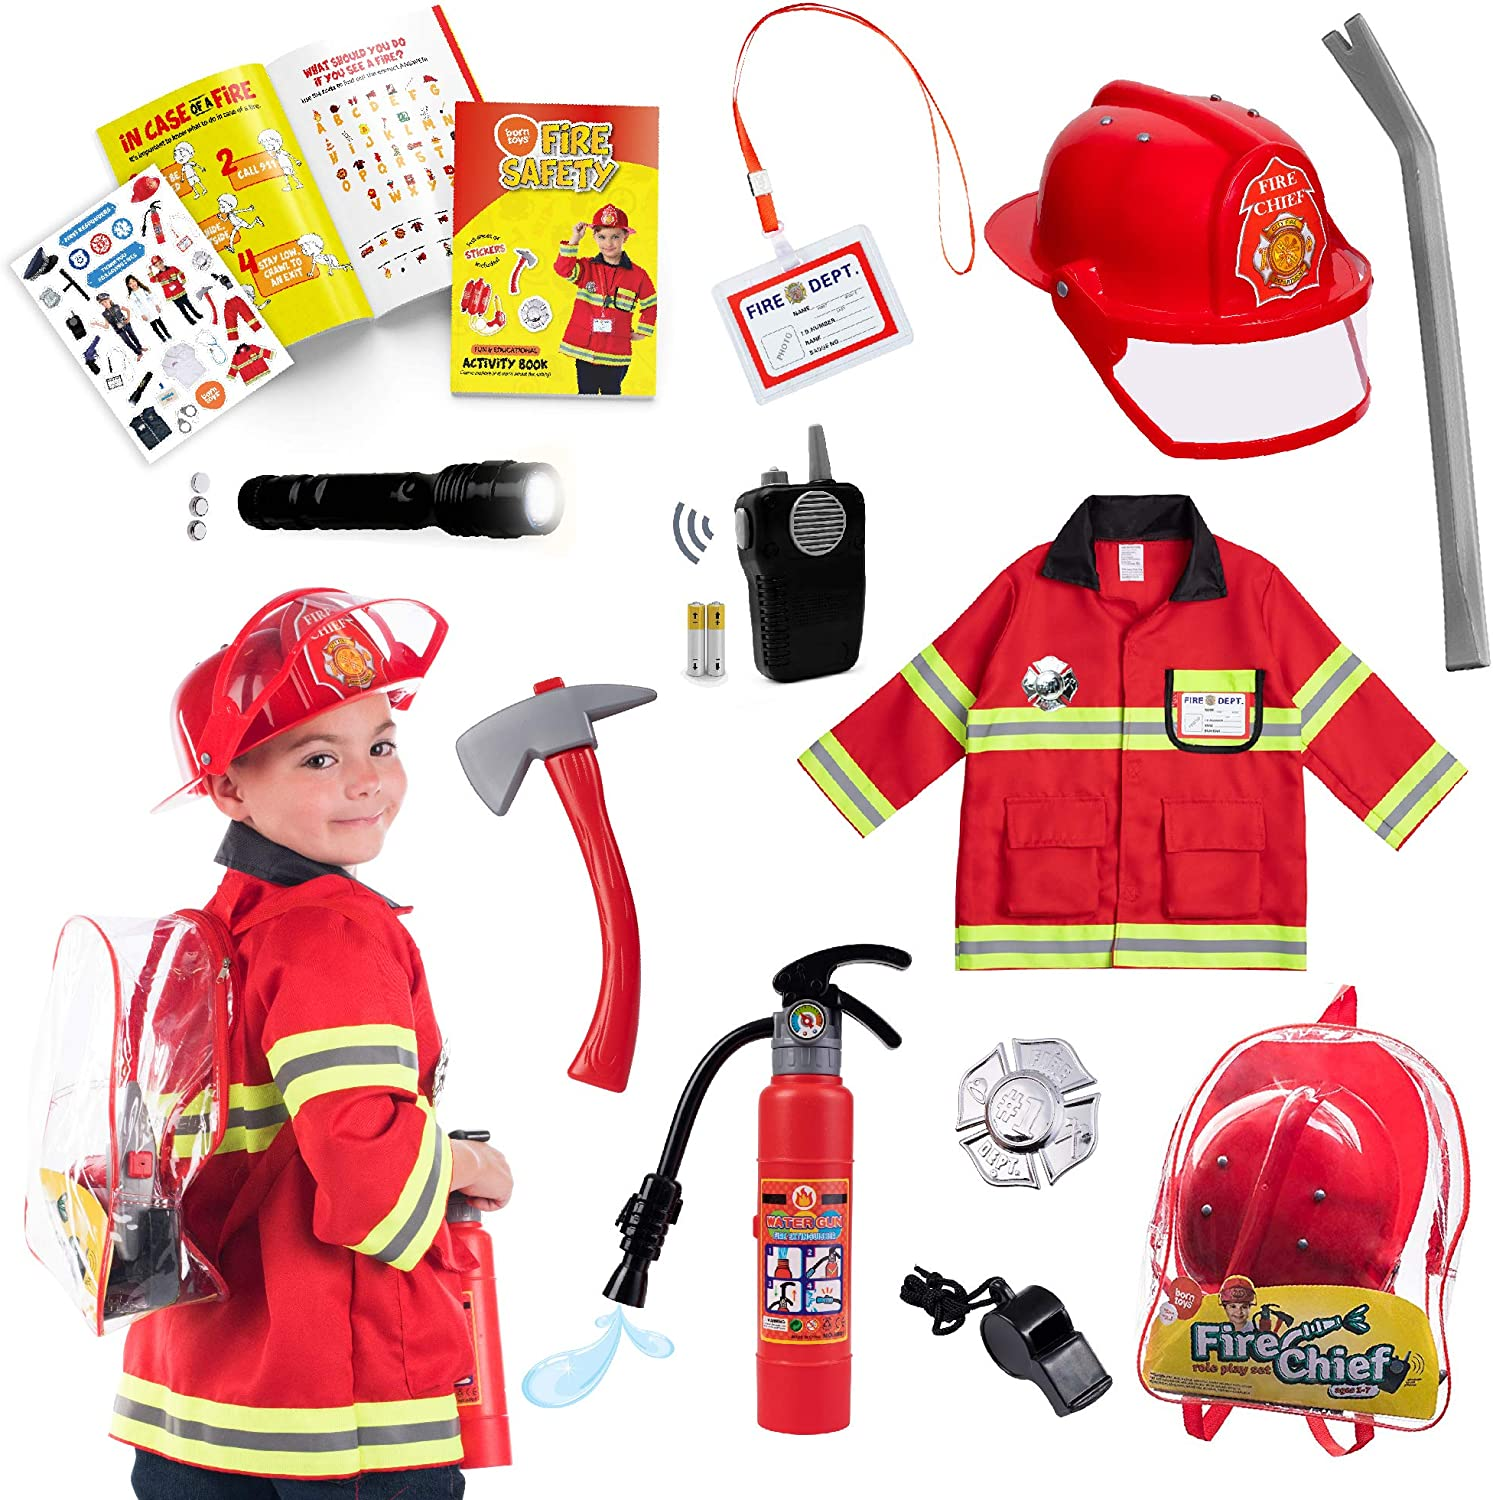 Kid /& Boy Fireman Role Playing Costumes Dress Up Fun Fire Extinguisher Toy